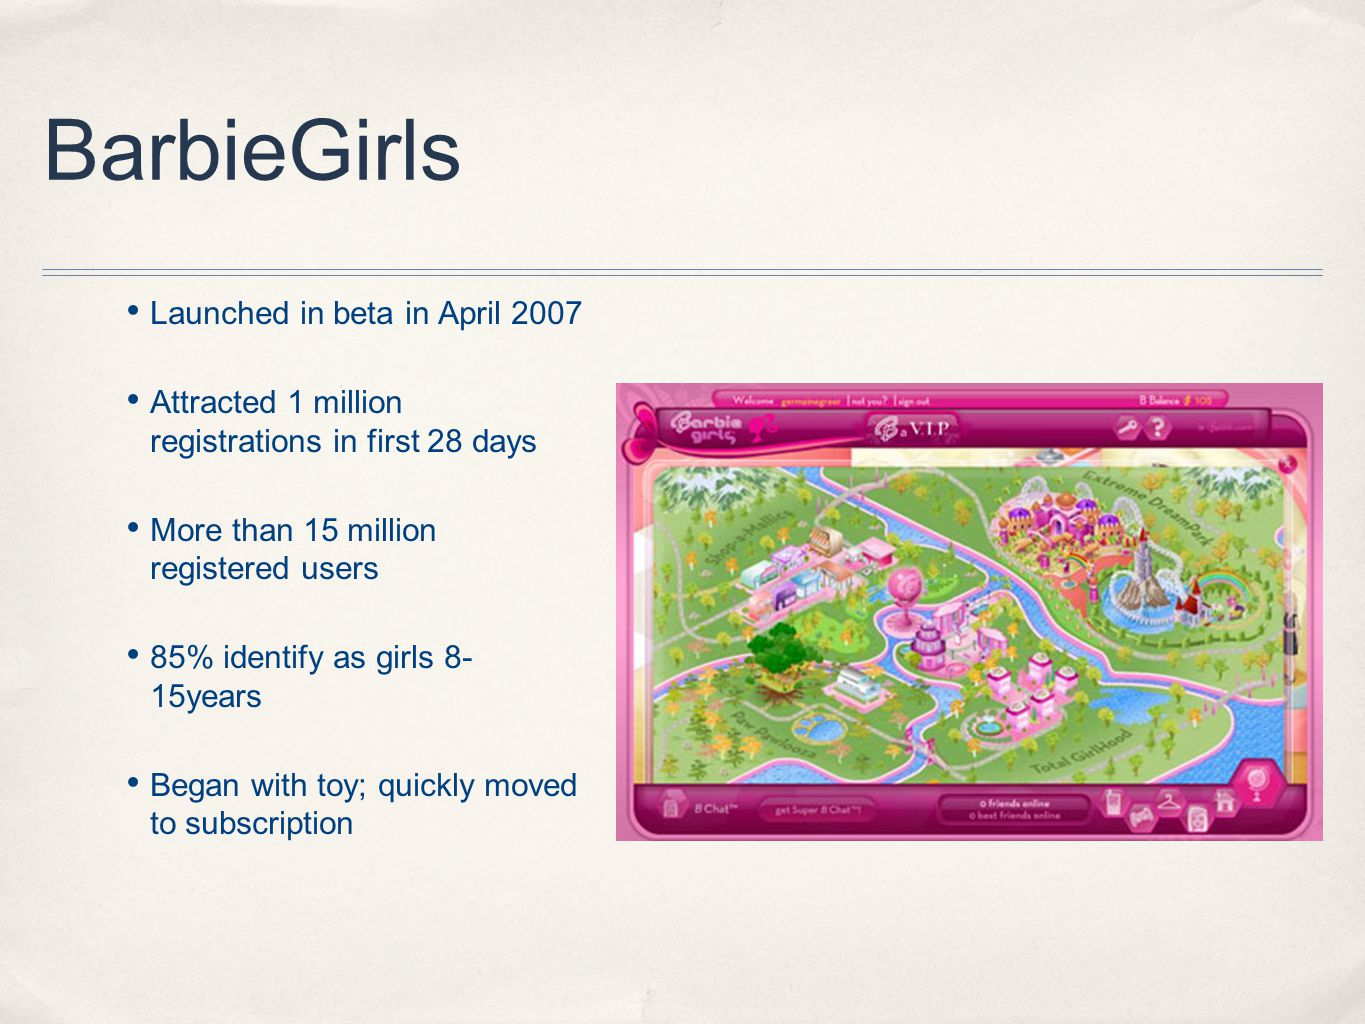 BarbieGirls Launched in beta in April 2007 Attracted 1 million registrations in first 28 days More than 15 million registered users 85% identify as girls 8- 15years Began with toy; quickly moved to subscription